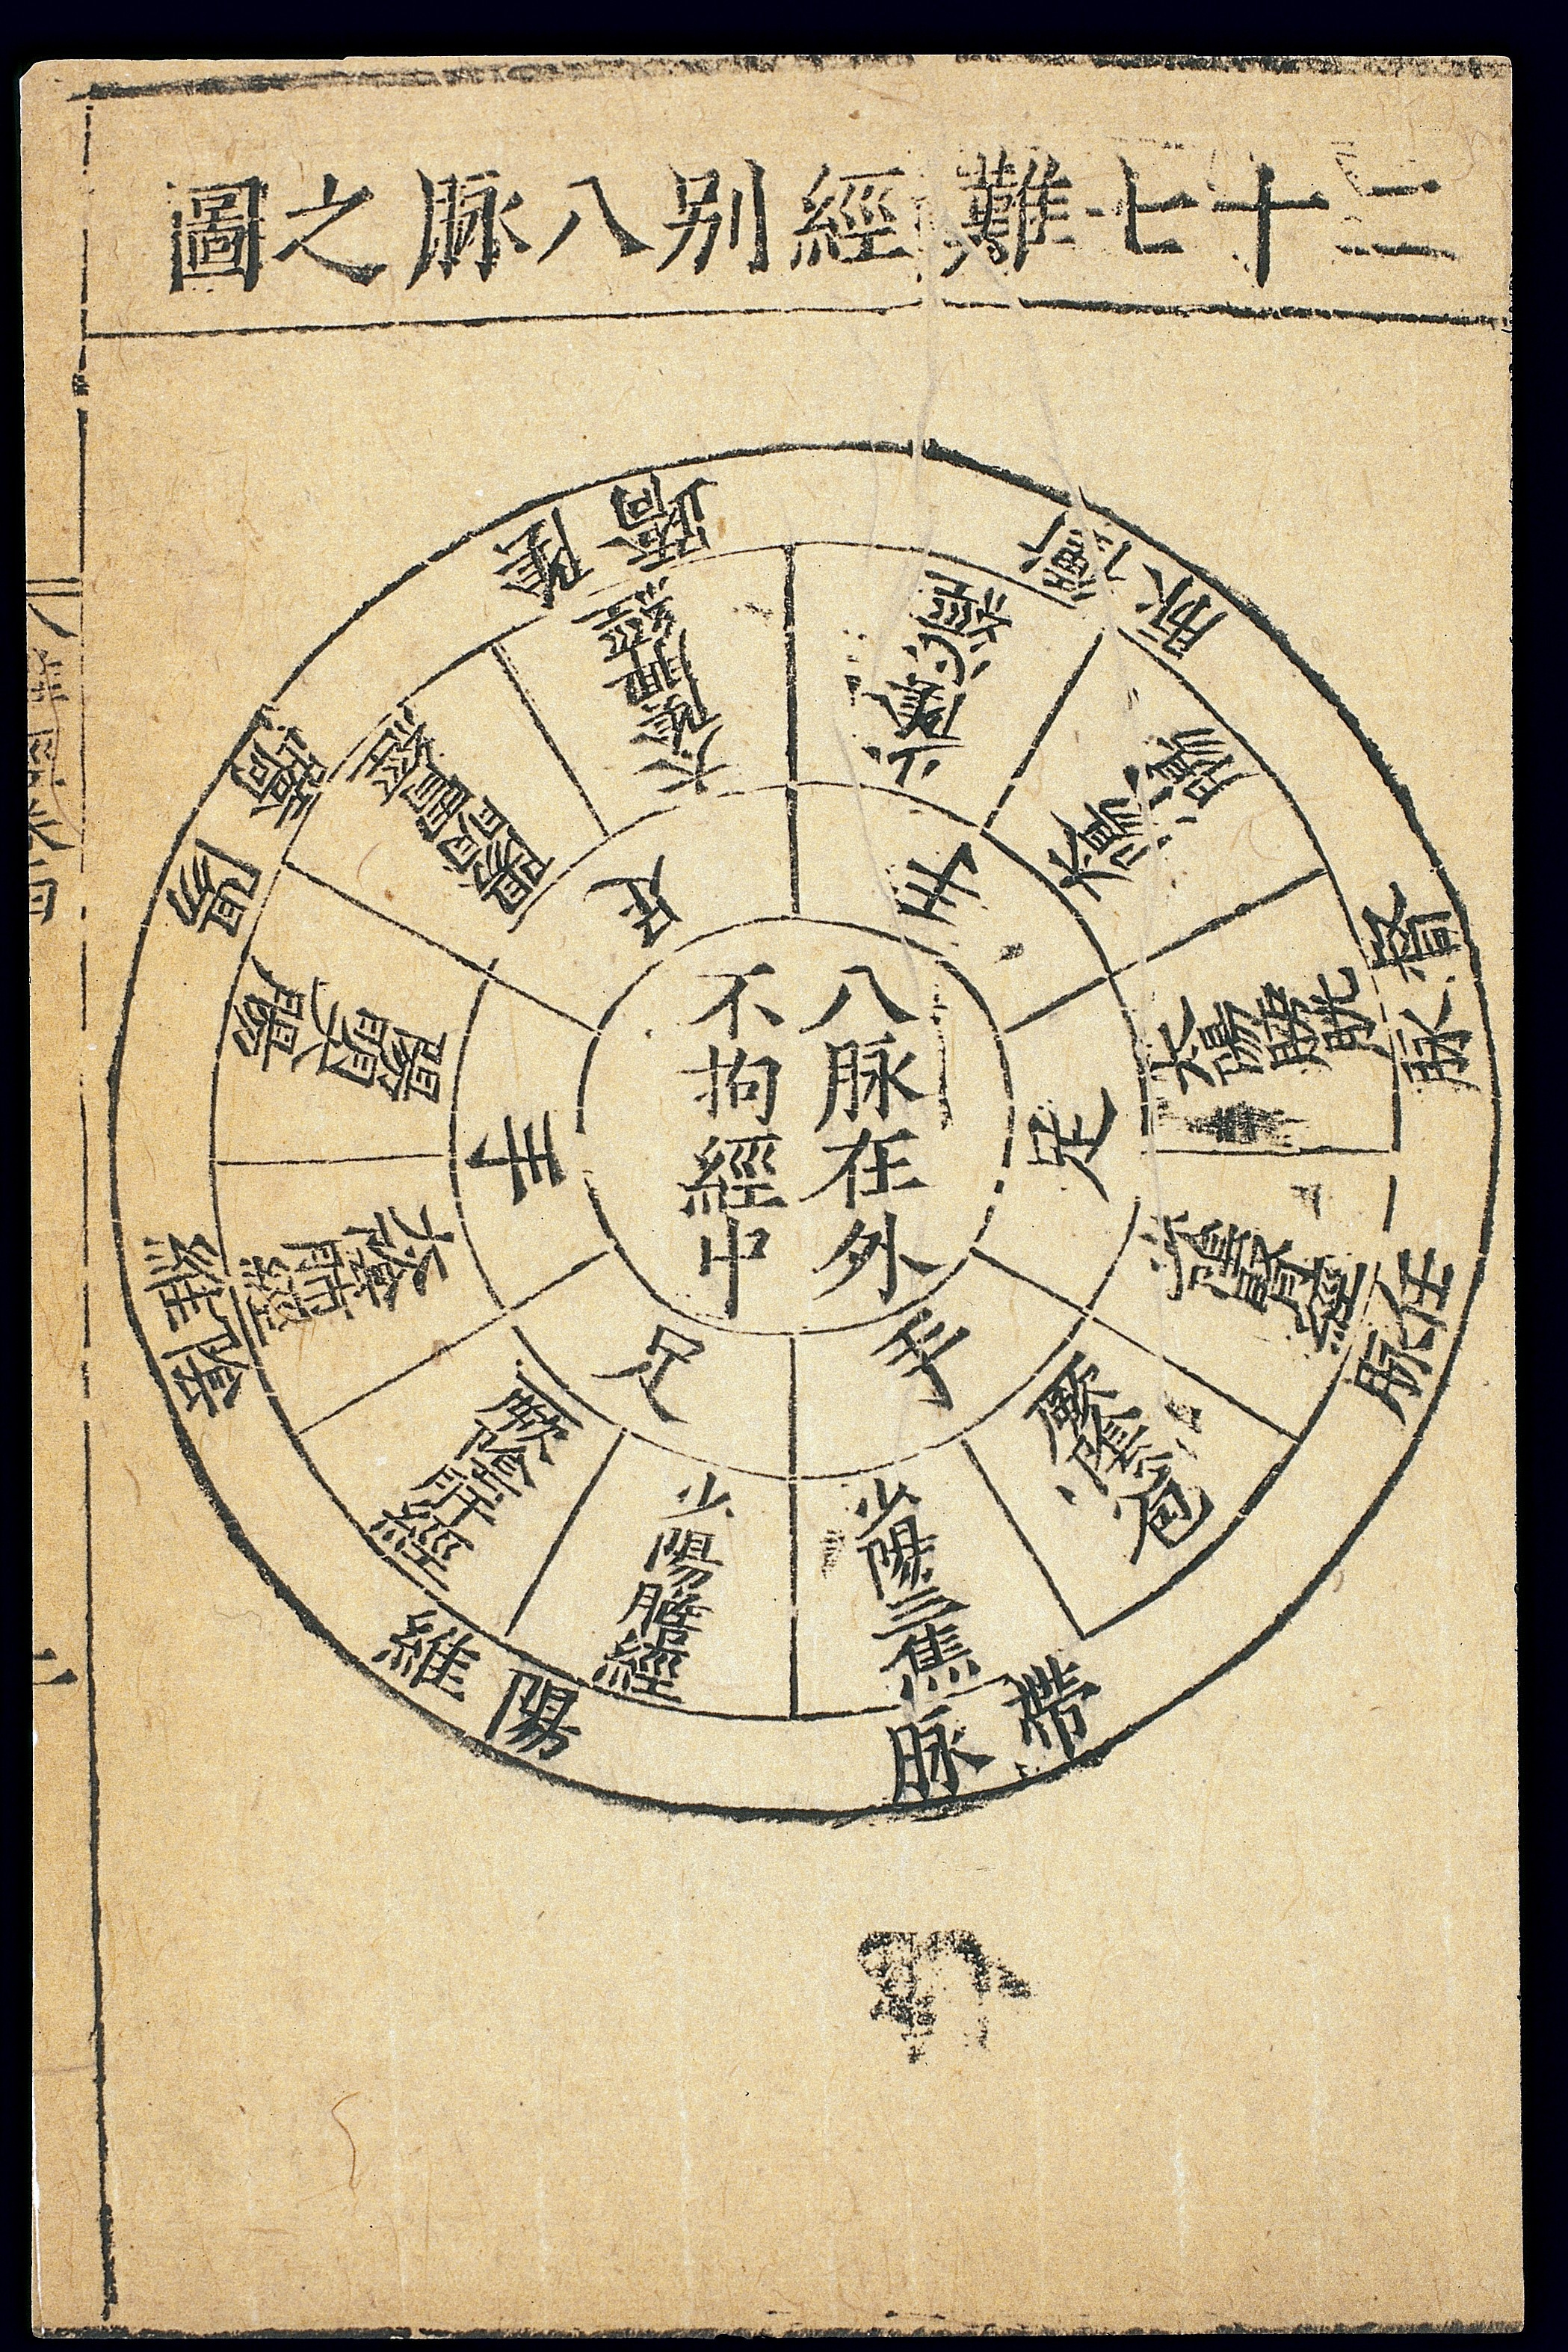 File:Ming Chinese wheel diagram of the channels Wellcome